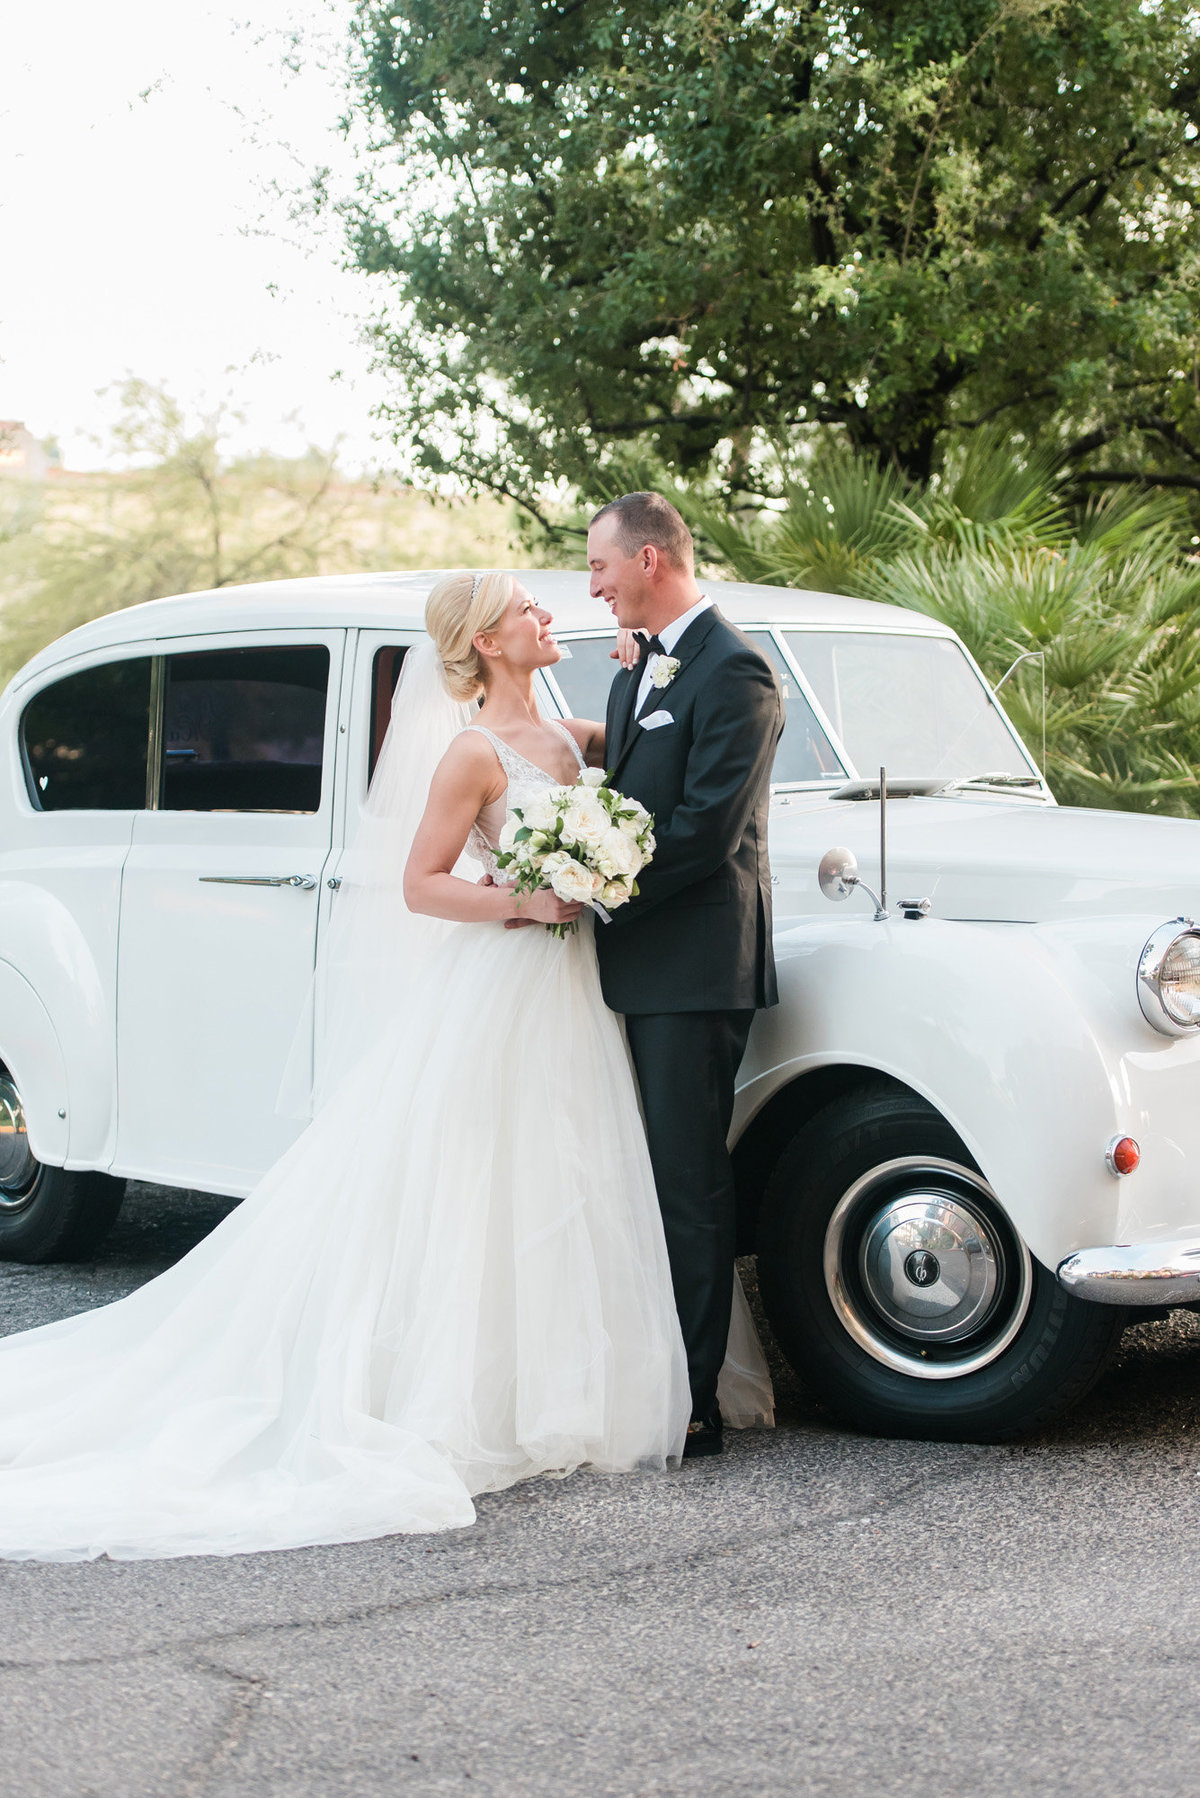 a bride and groom standing in front of a white vintage car at their wedding at JW Marriott Resort and Spa Las Vegas